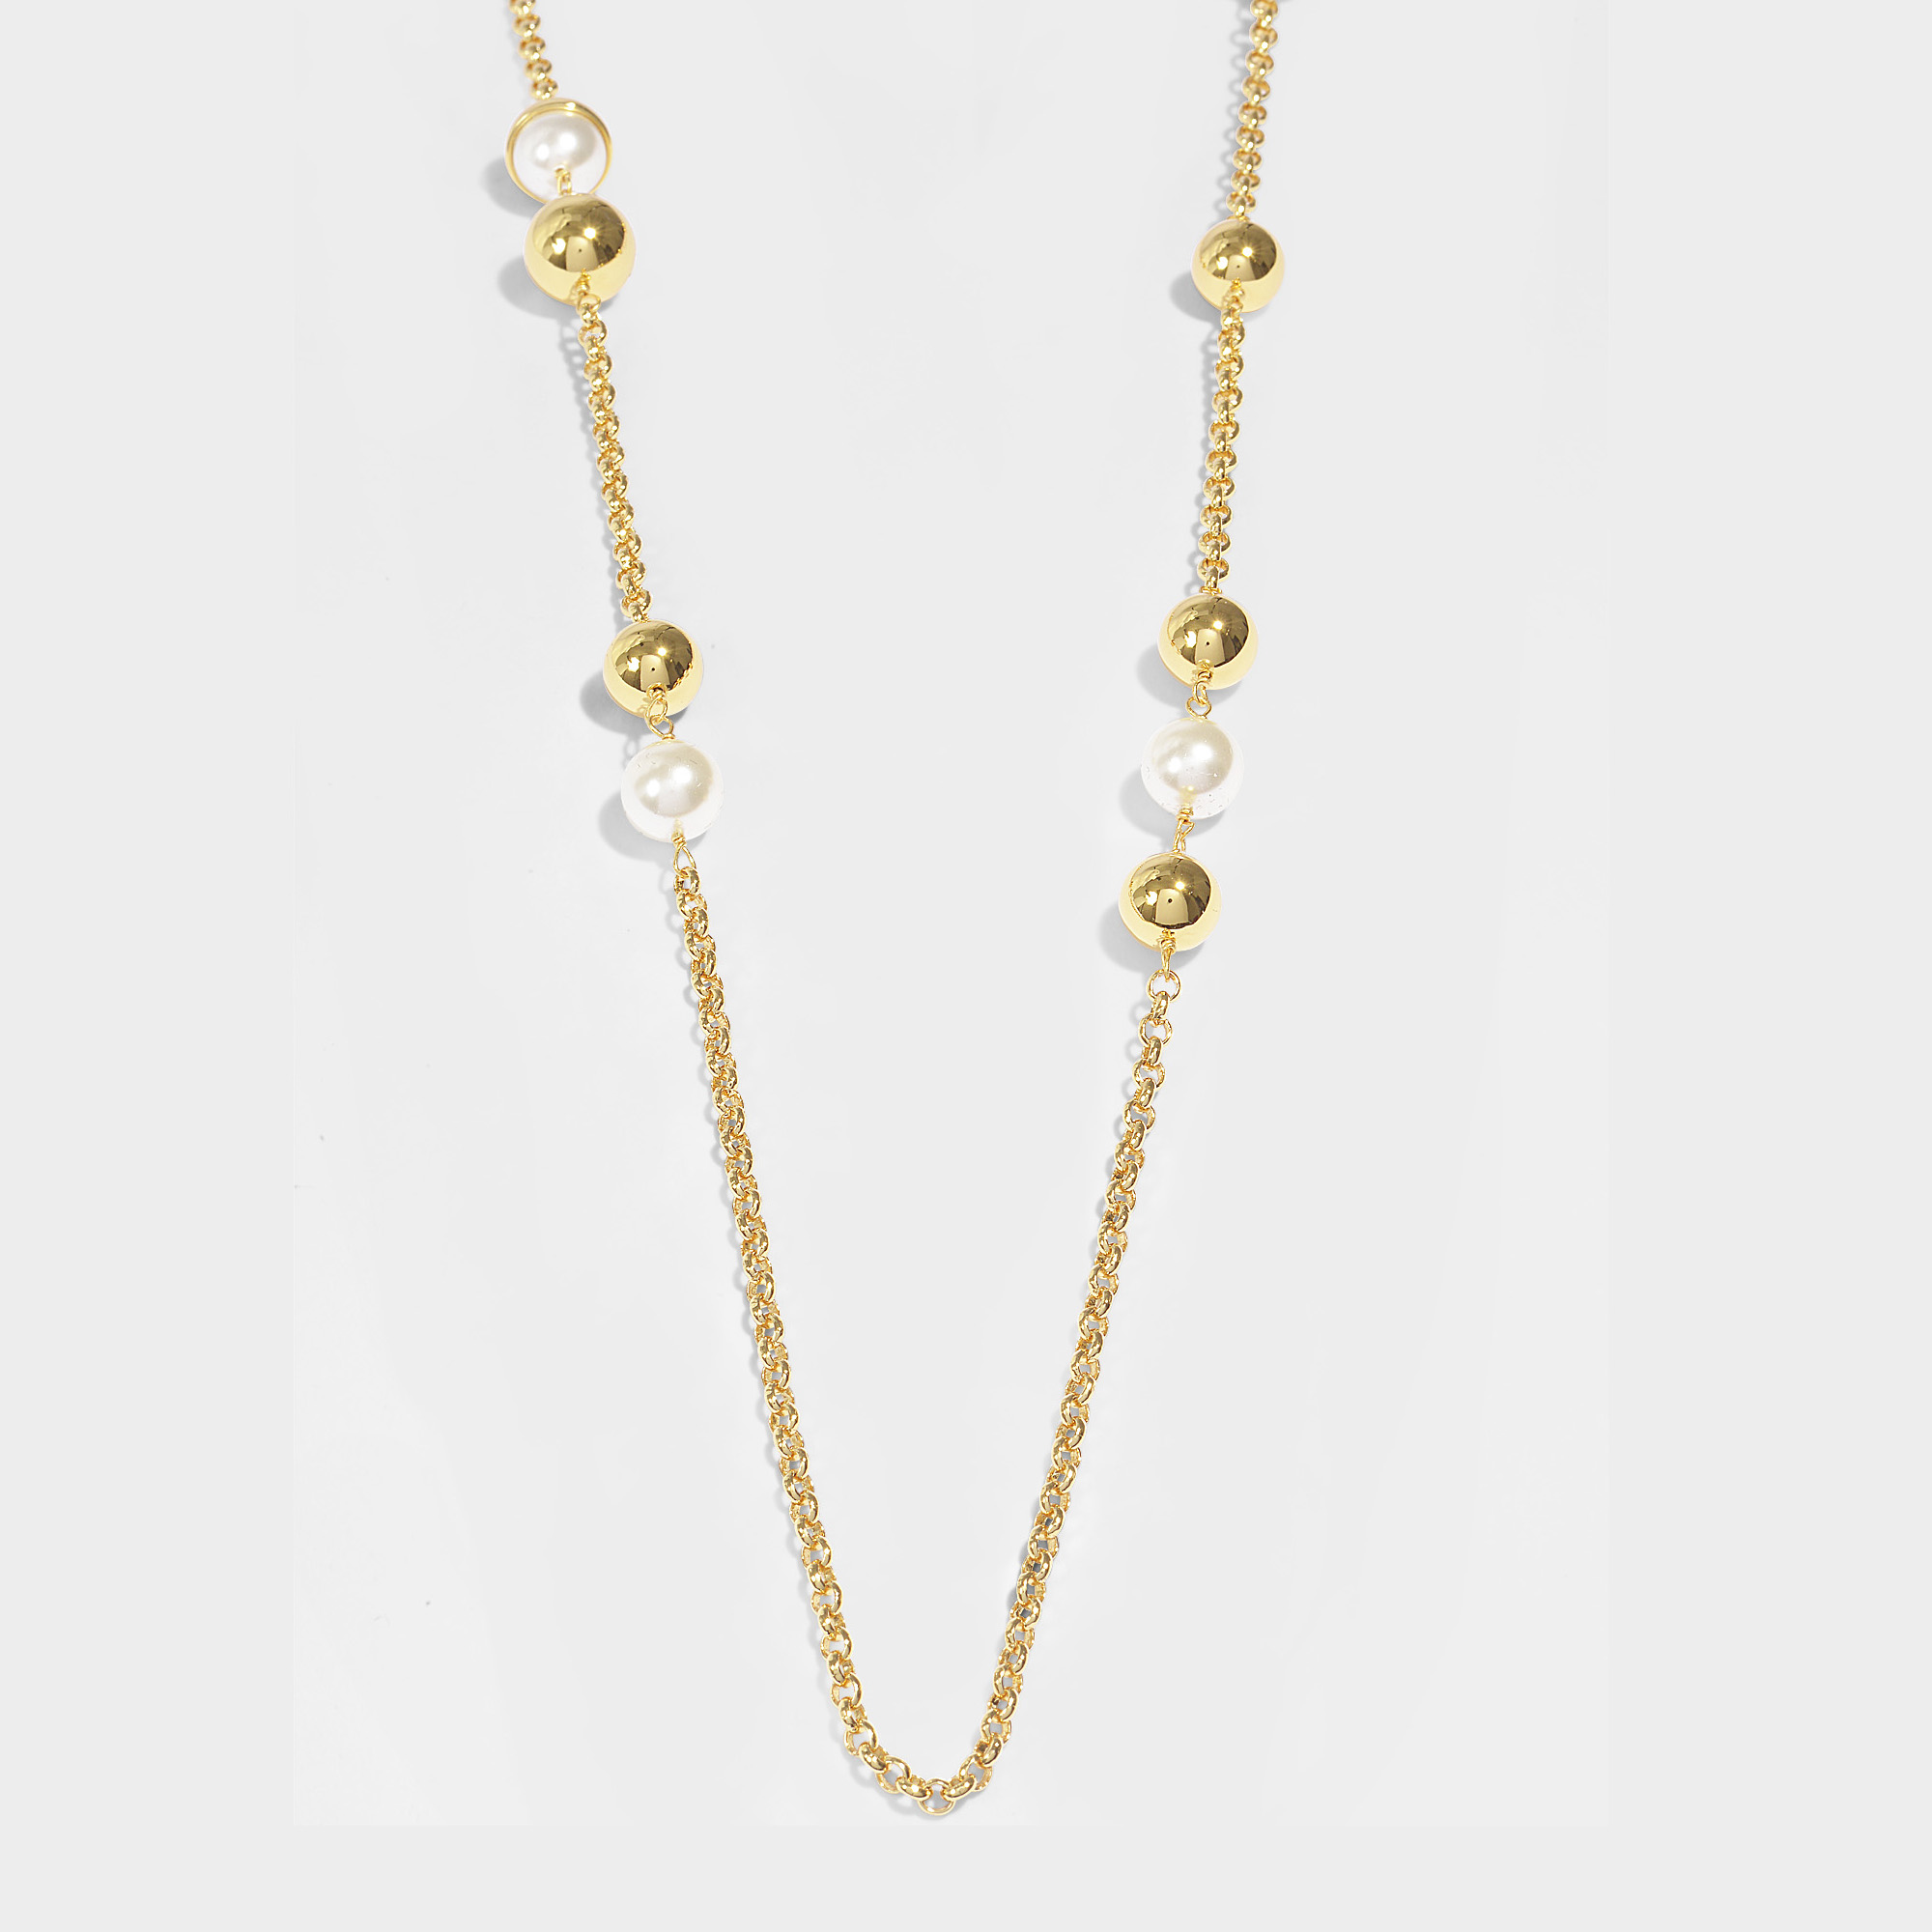 TORY BURCH CAPPED CRYSTAL PEARL CHAIN ROSARY NECKLACE, IVORY